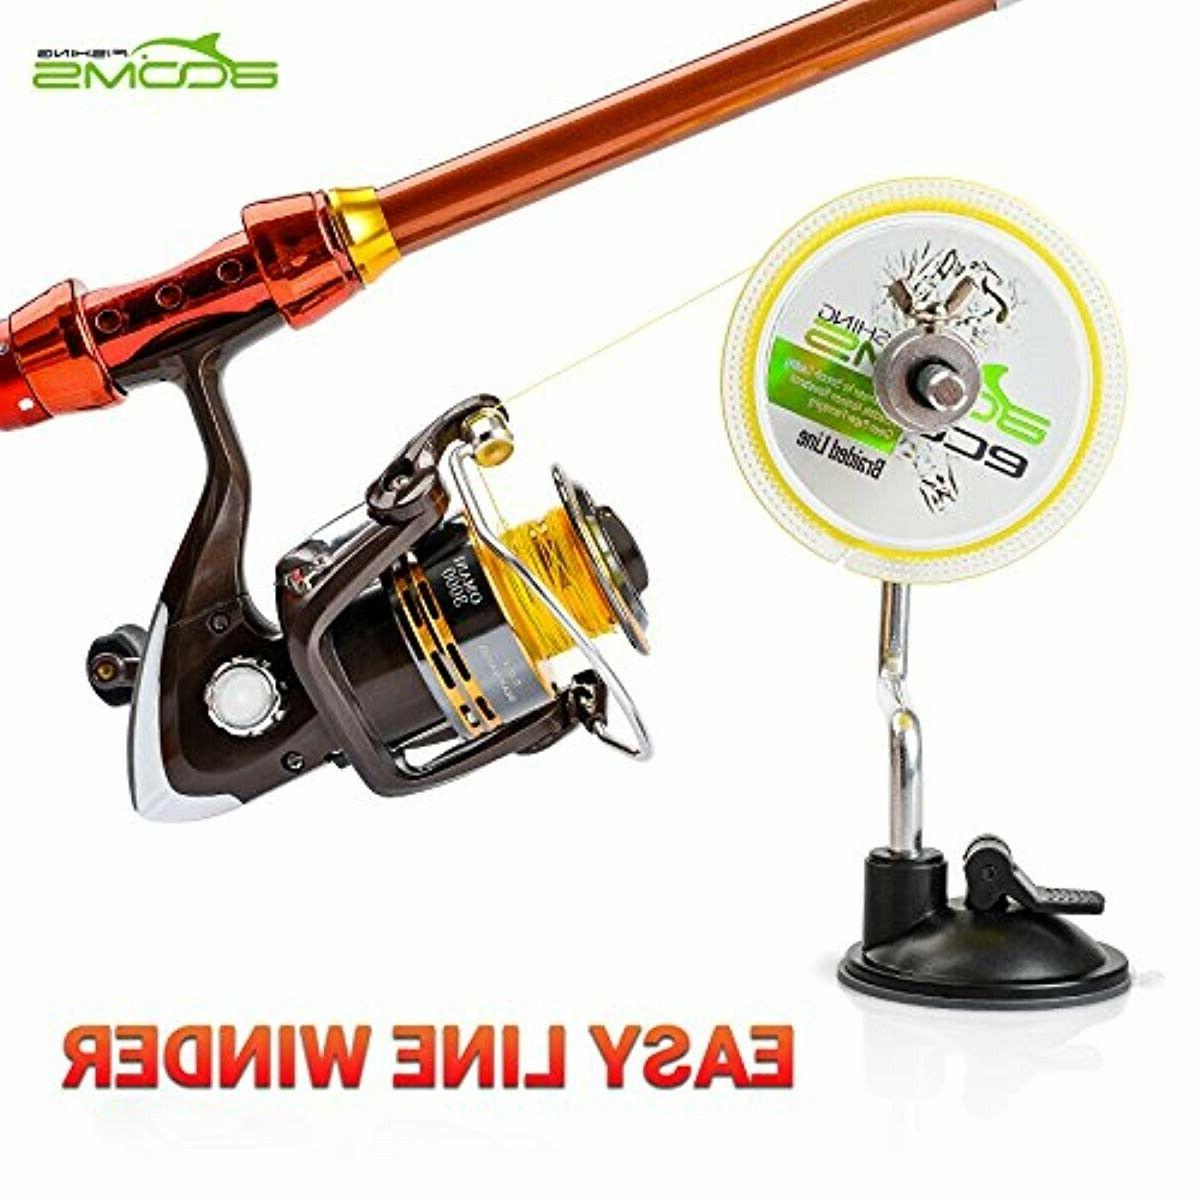 Booms Fishing Adjustable for Varying Sizes